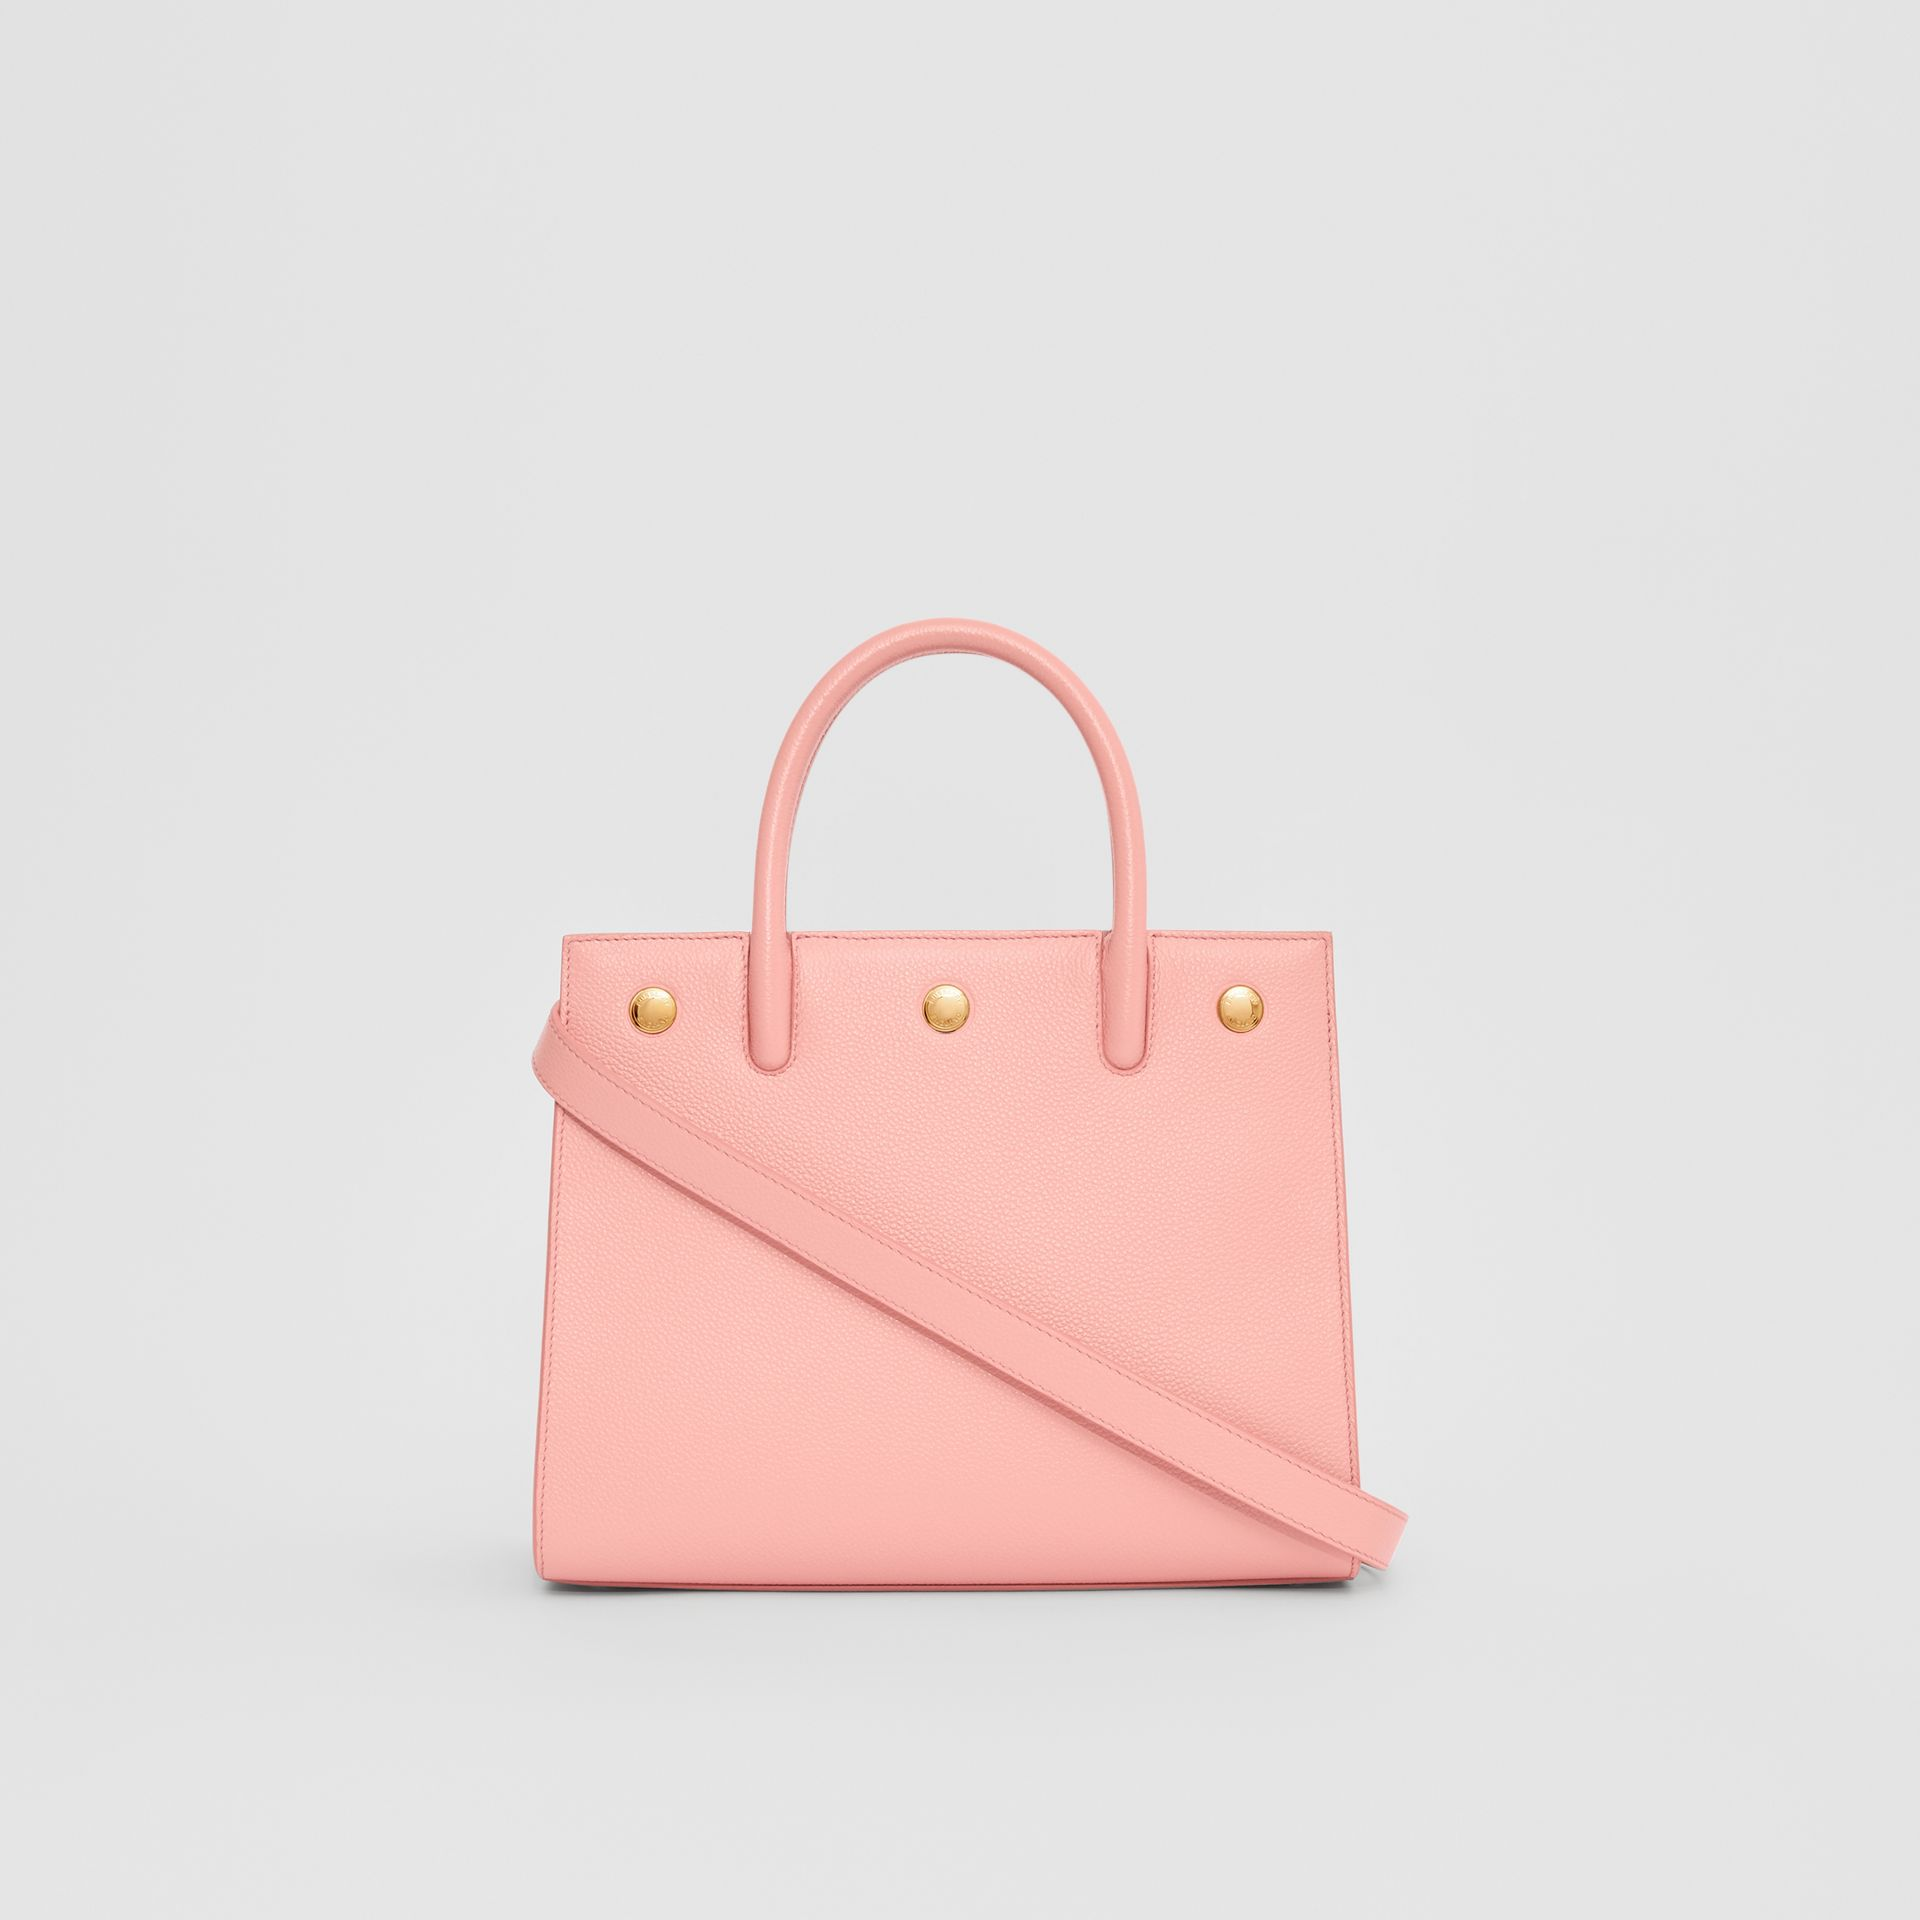 Mini Leather Two-handle Title Bag in Blush Pink - Women | Burberry United Kingdom - gallery image 7